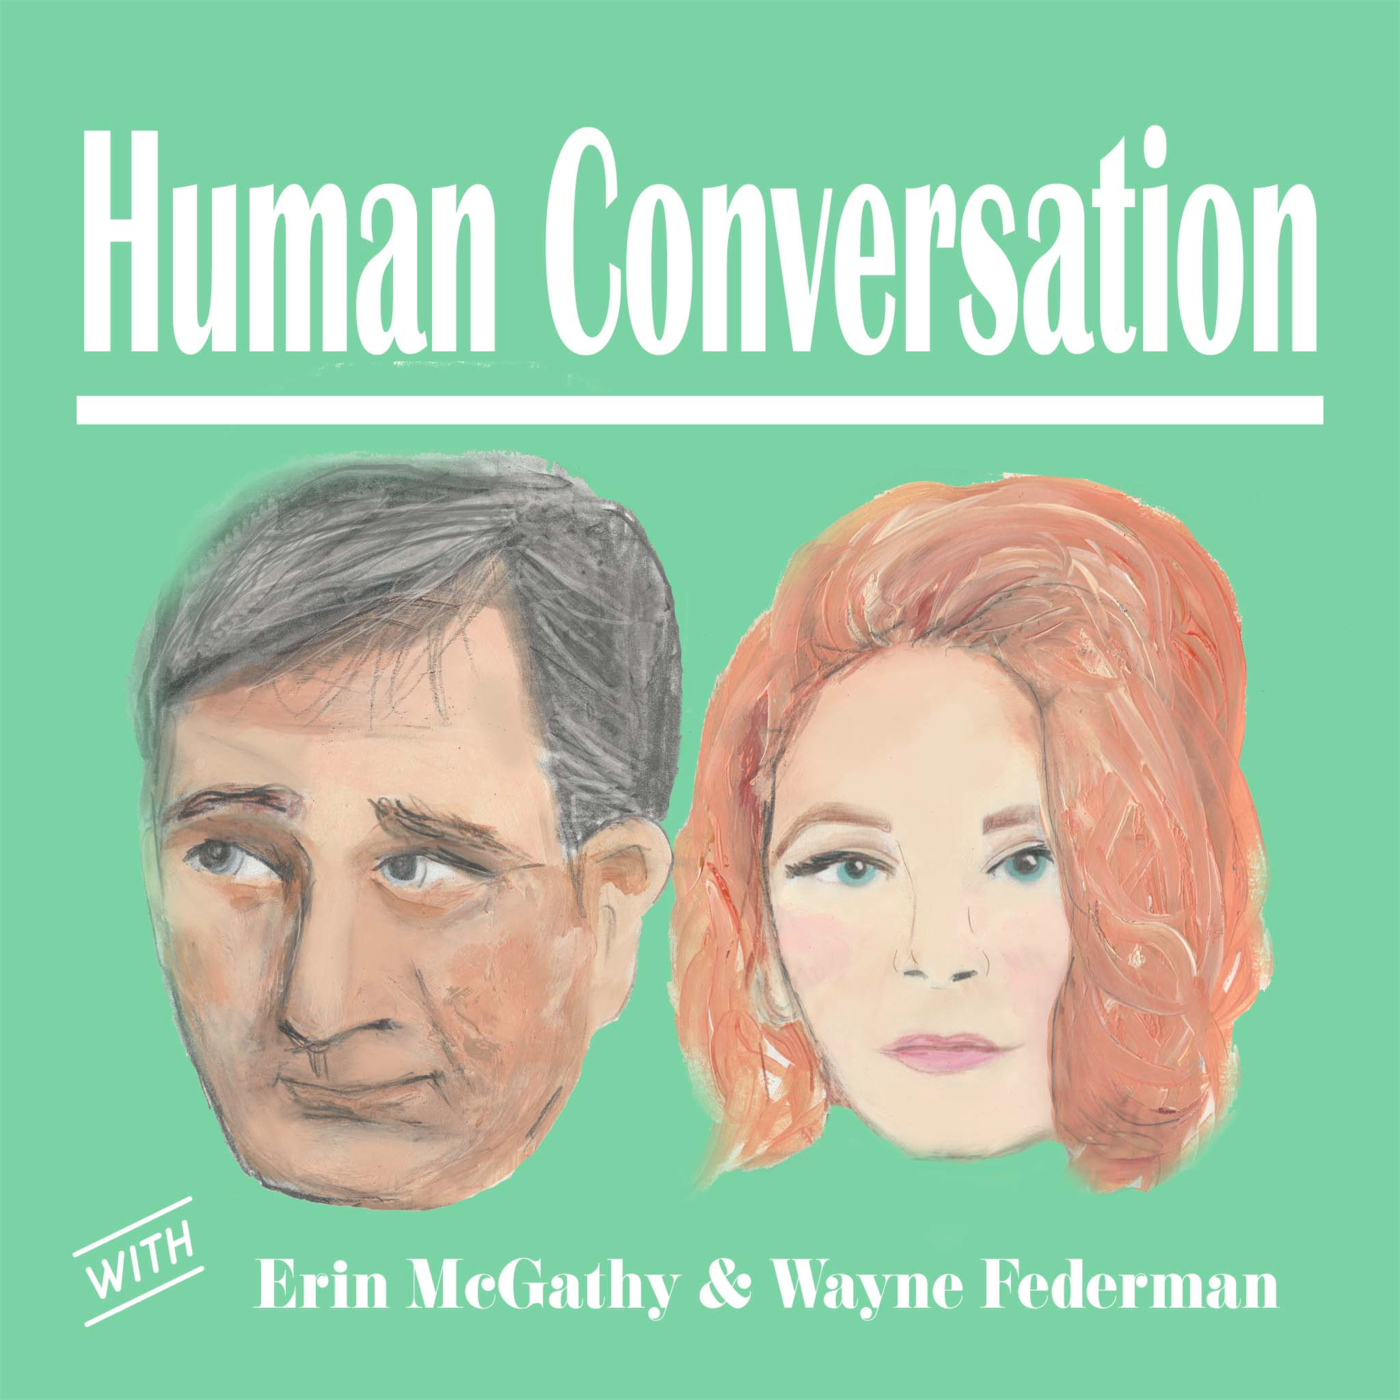 Human Conversation with Erin McGathy and Wayne Federman